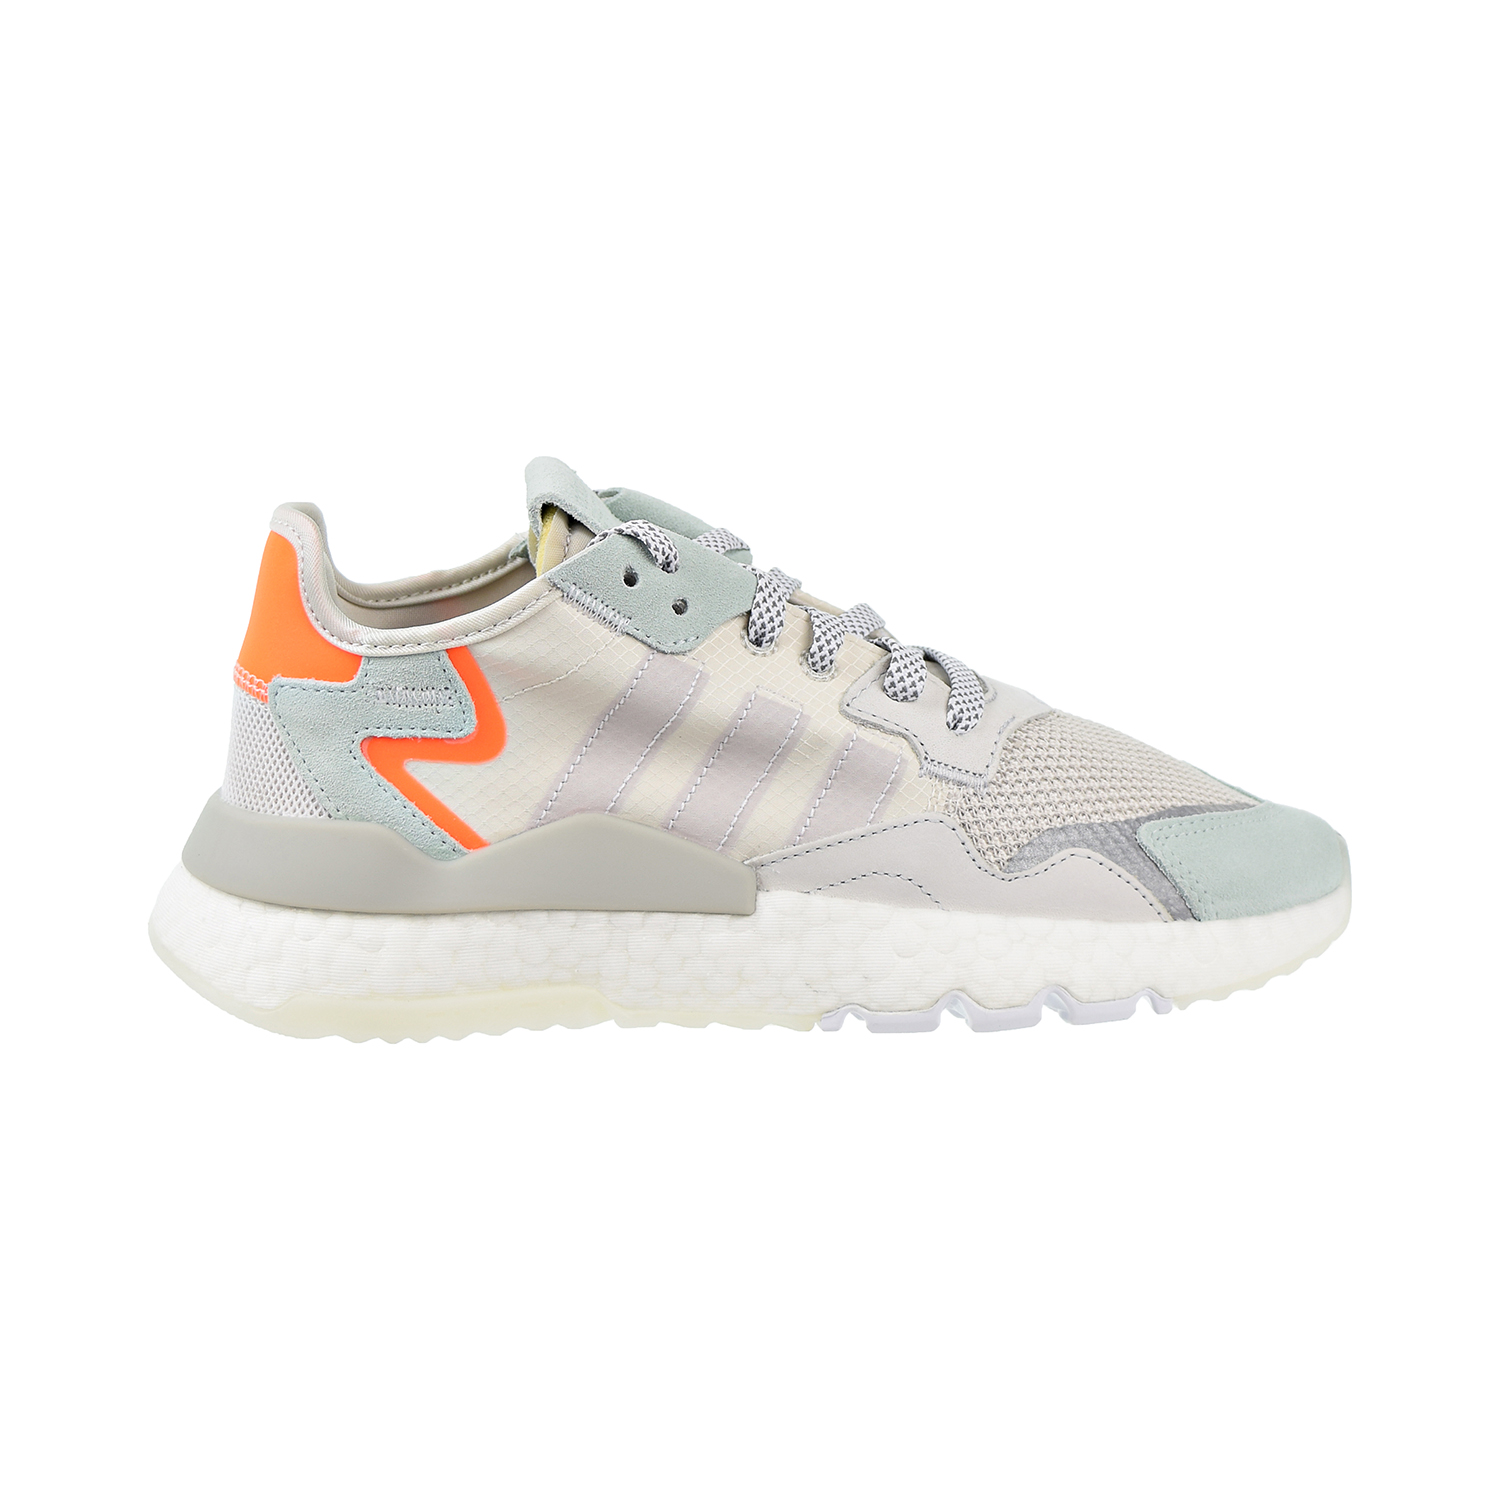 Shoes Raw White-Grey One-Vapour Green